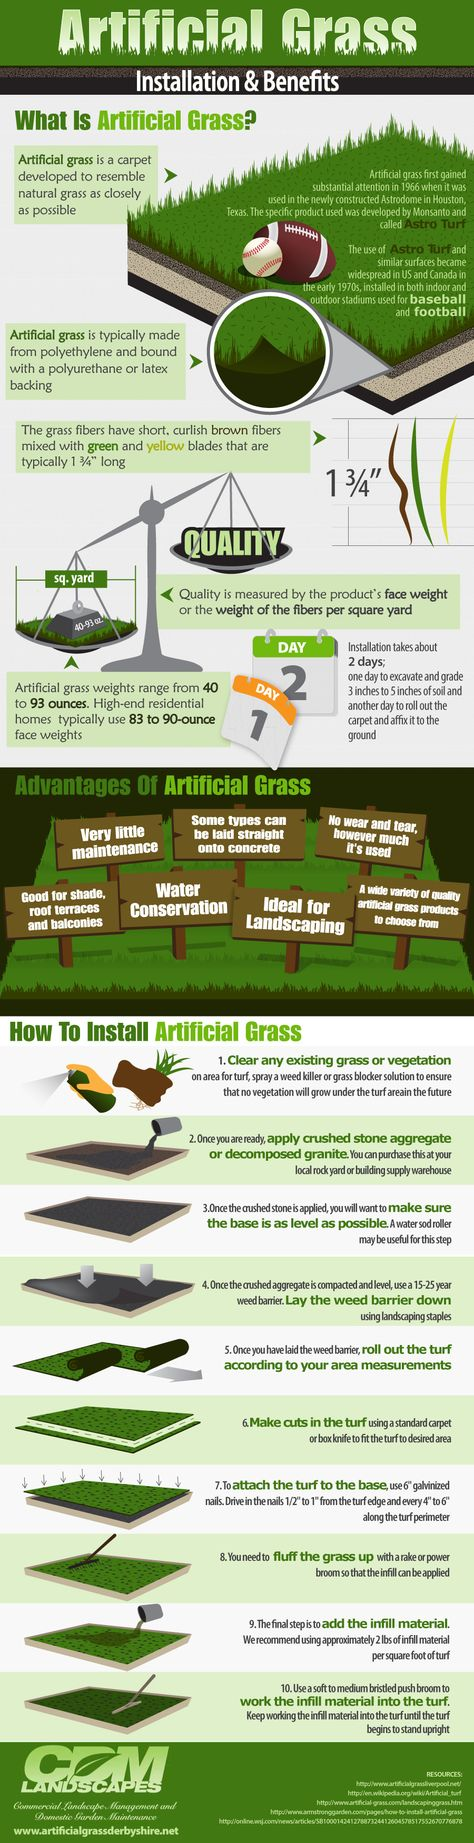 Artificial Grass – Installation and Benefits | Cool Daily Infographics